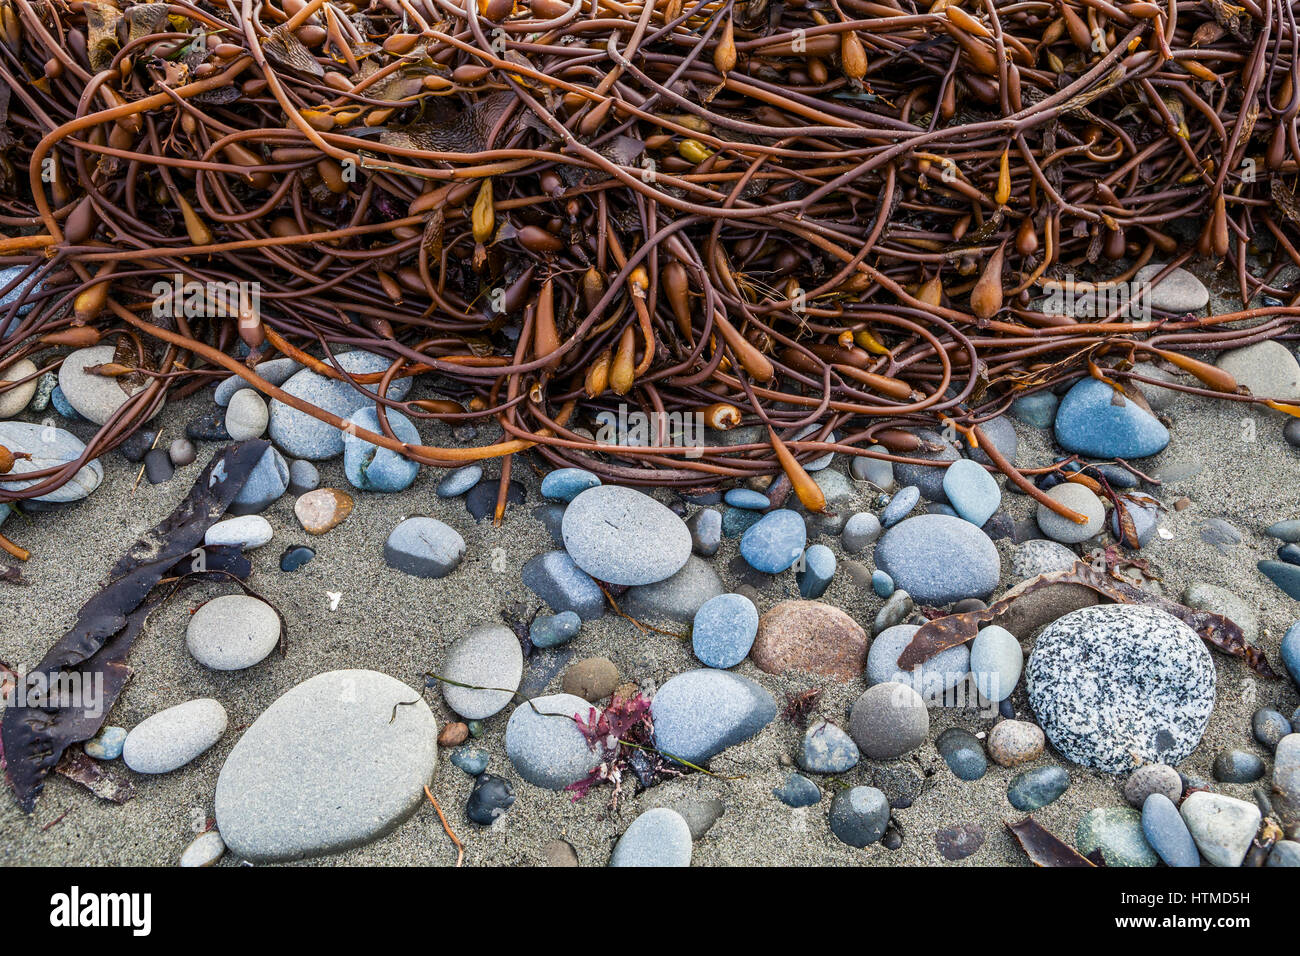 A tangle of kelp on a rocky beach. Dungeness Spit, Washington. - Stock Image